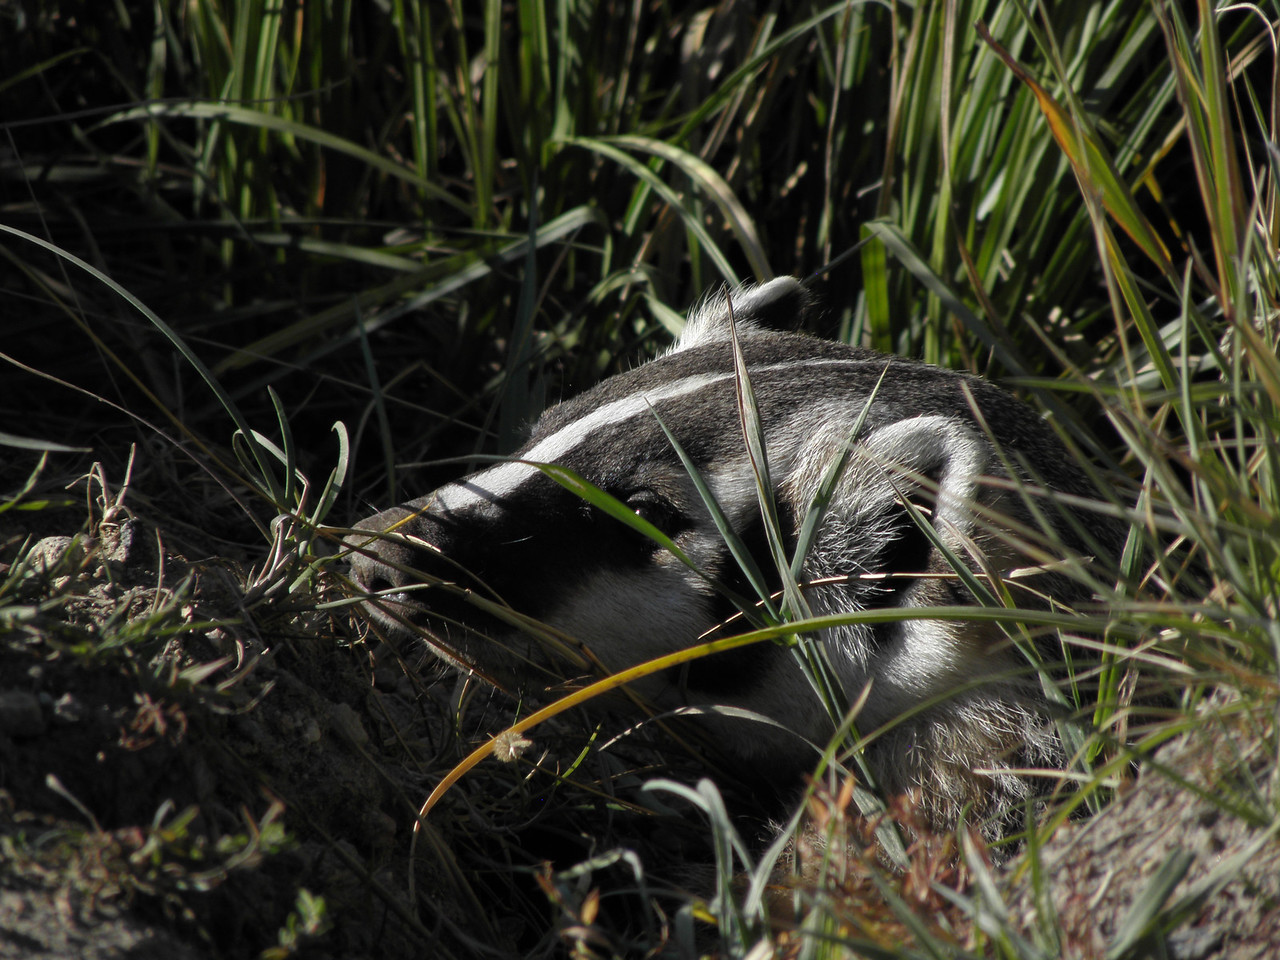 My first badger as he (she? I don't know- YOU look!) poked his/her head out of a culvert at Steamboat Lake. If you'd like to see a video of this badger as it came out of this culvert- https://www.facebook.com/rex.nelson.9/videos/vb.1266099361/4560435650043/?type=3&theater